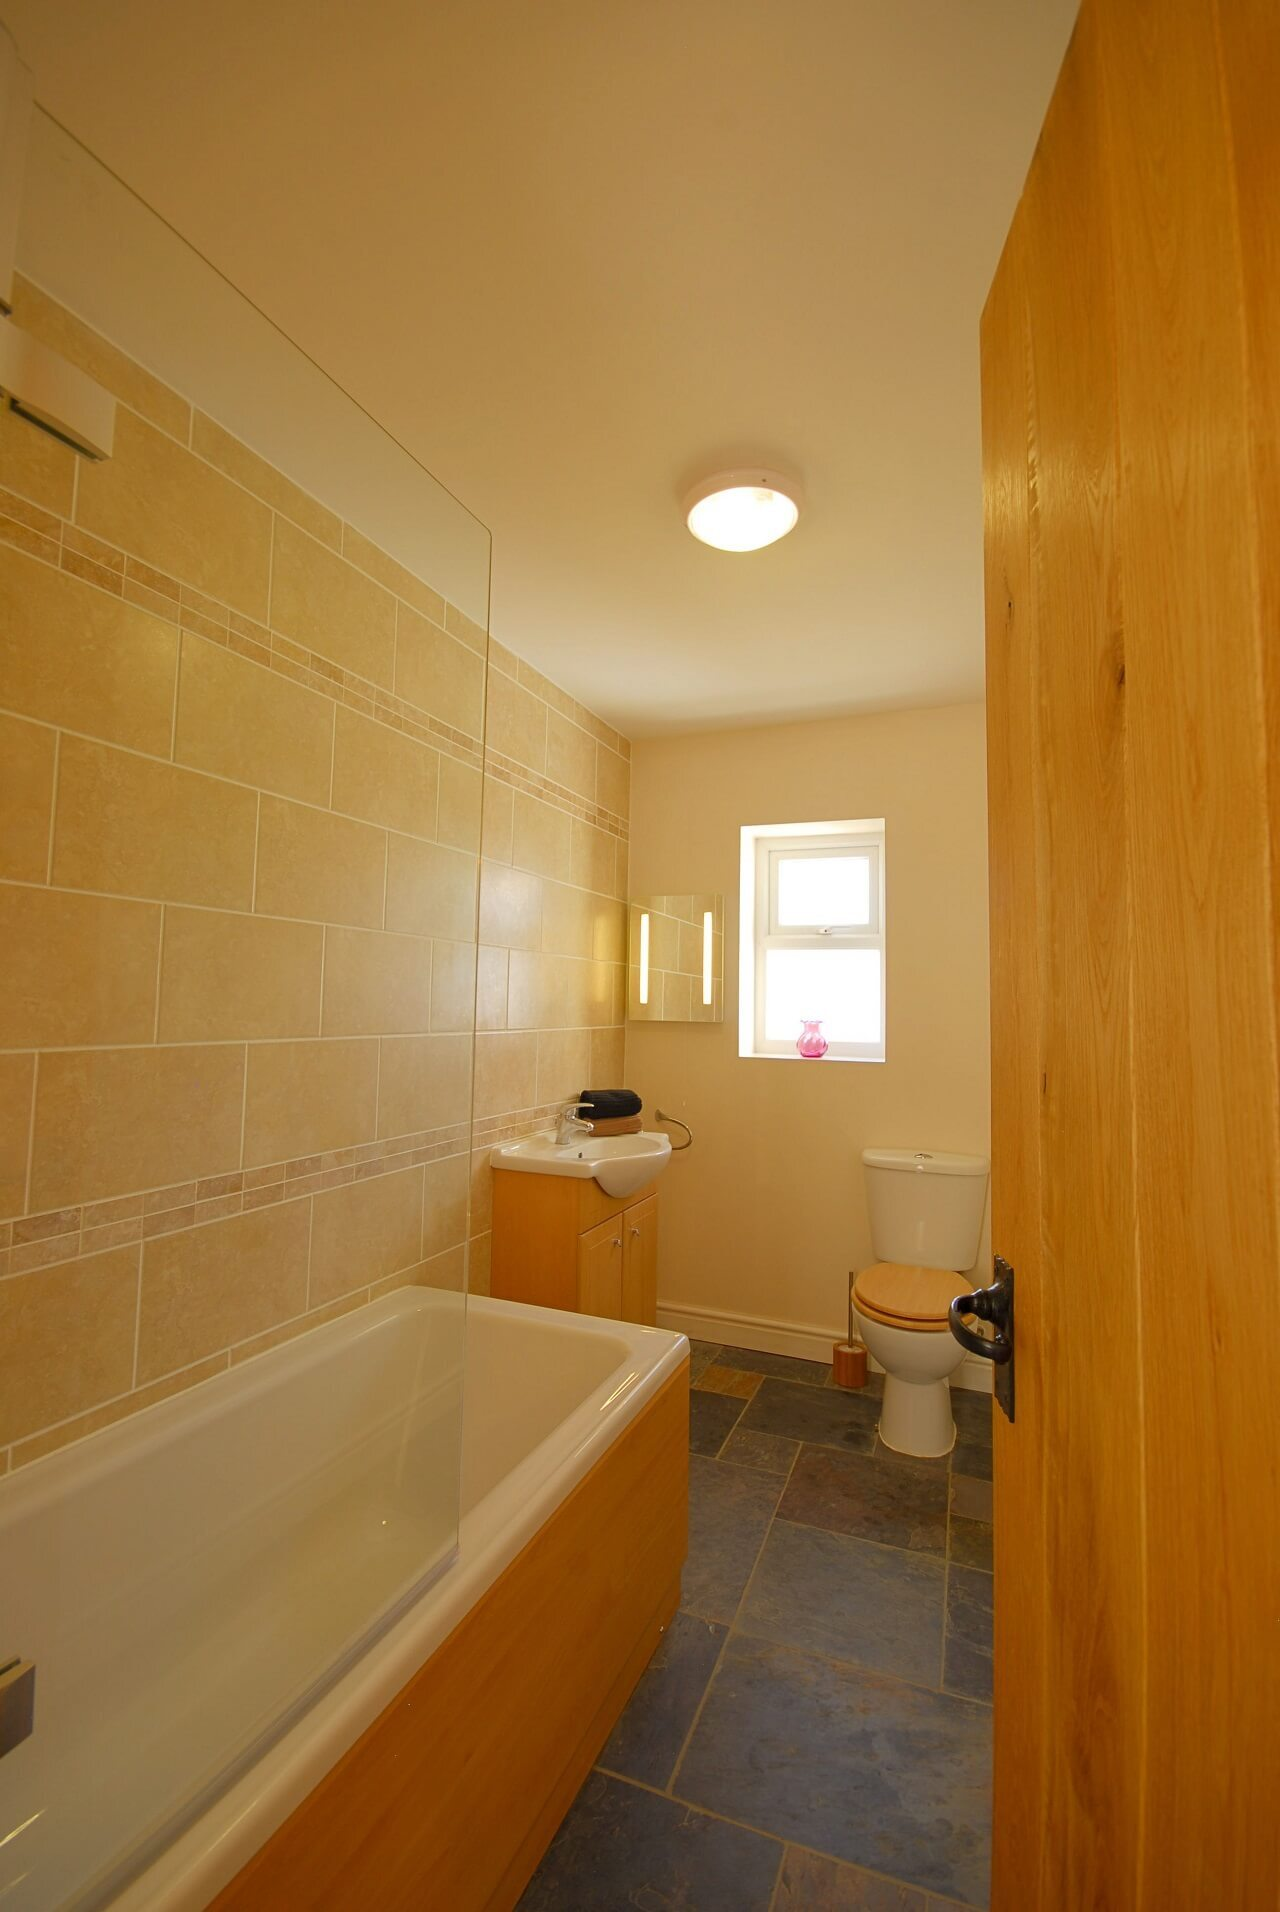 Self catering sleeps 6 2 bathrooms